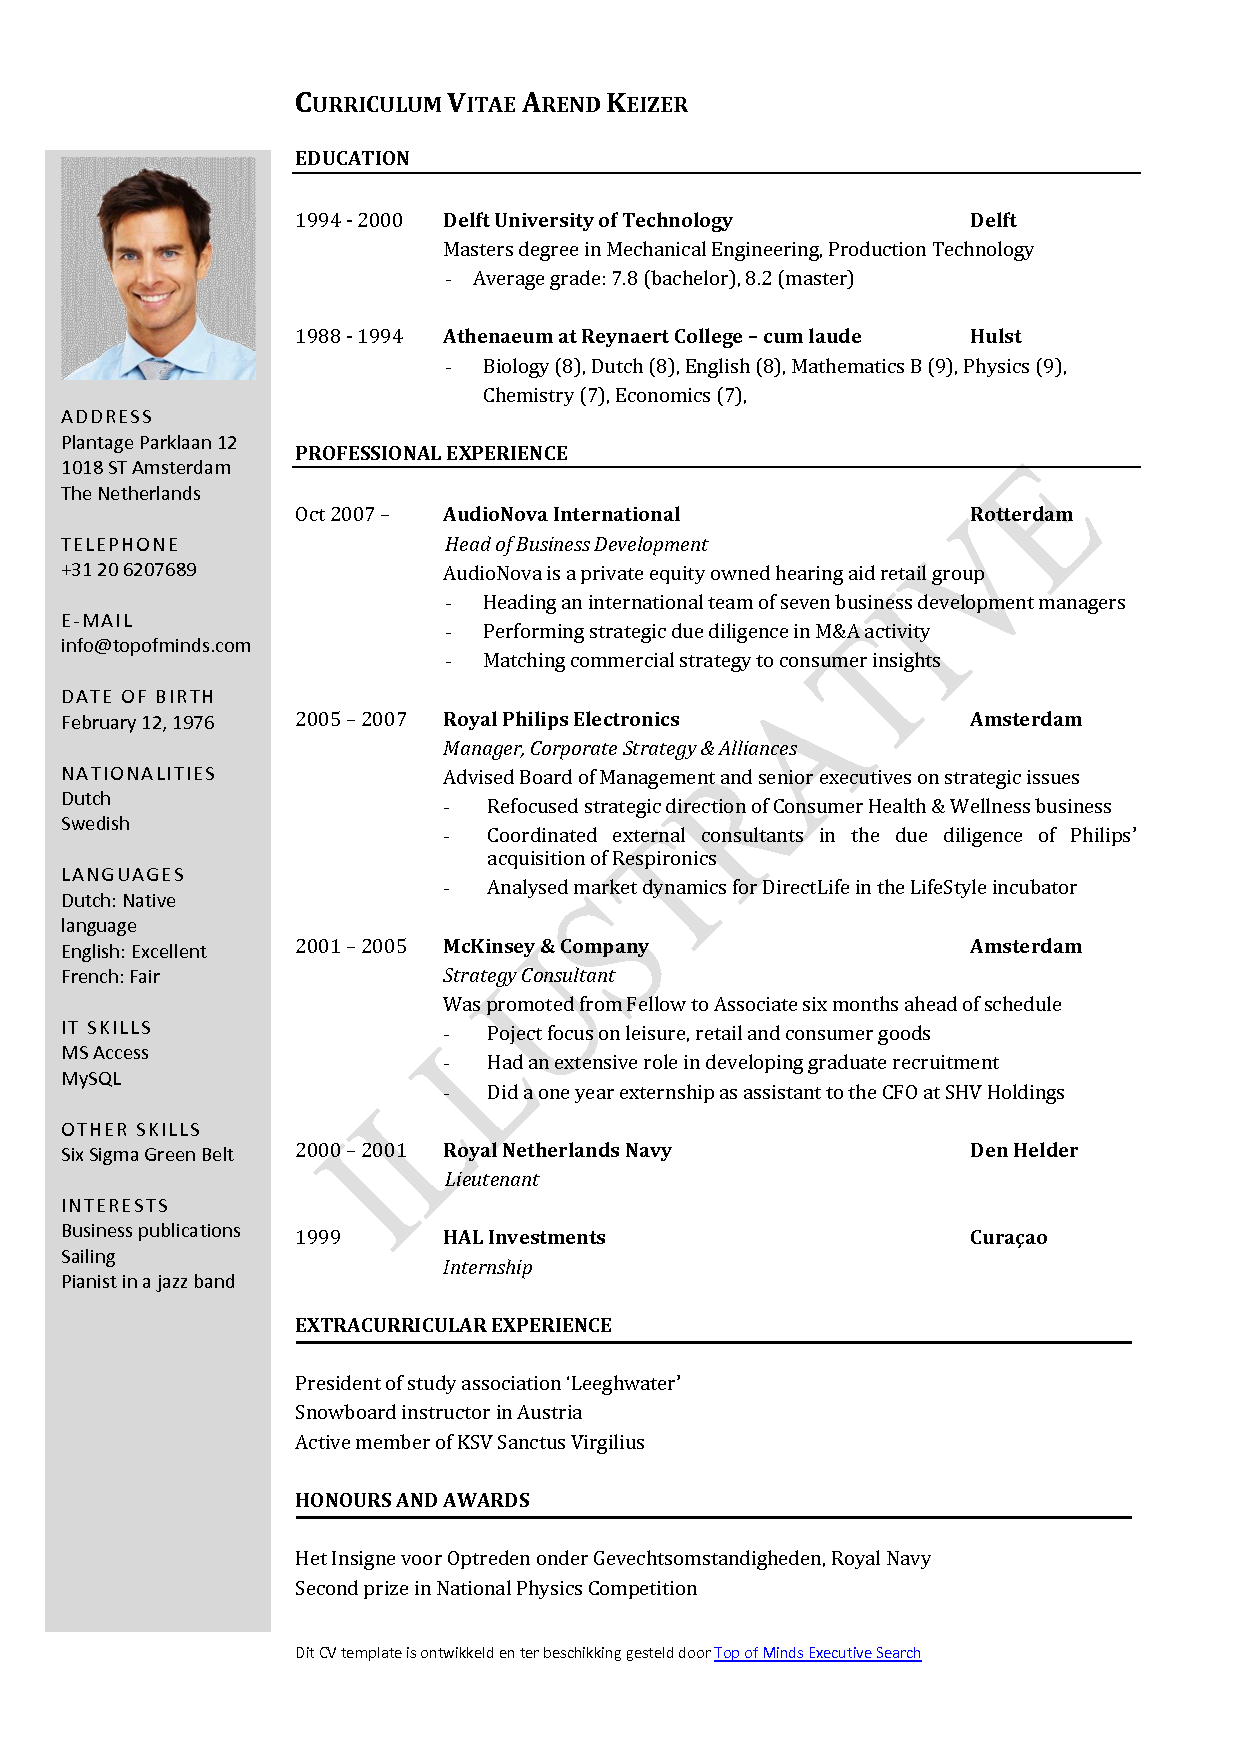 Curriculum Vitae To Download Free